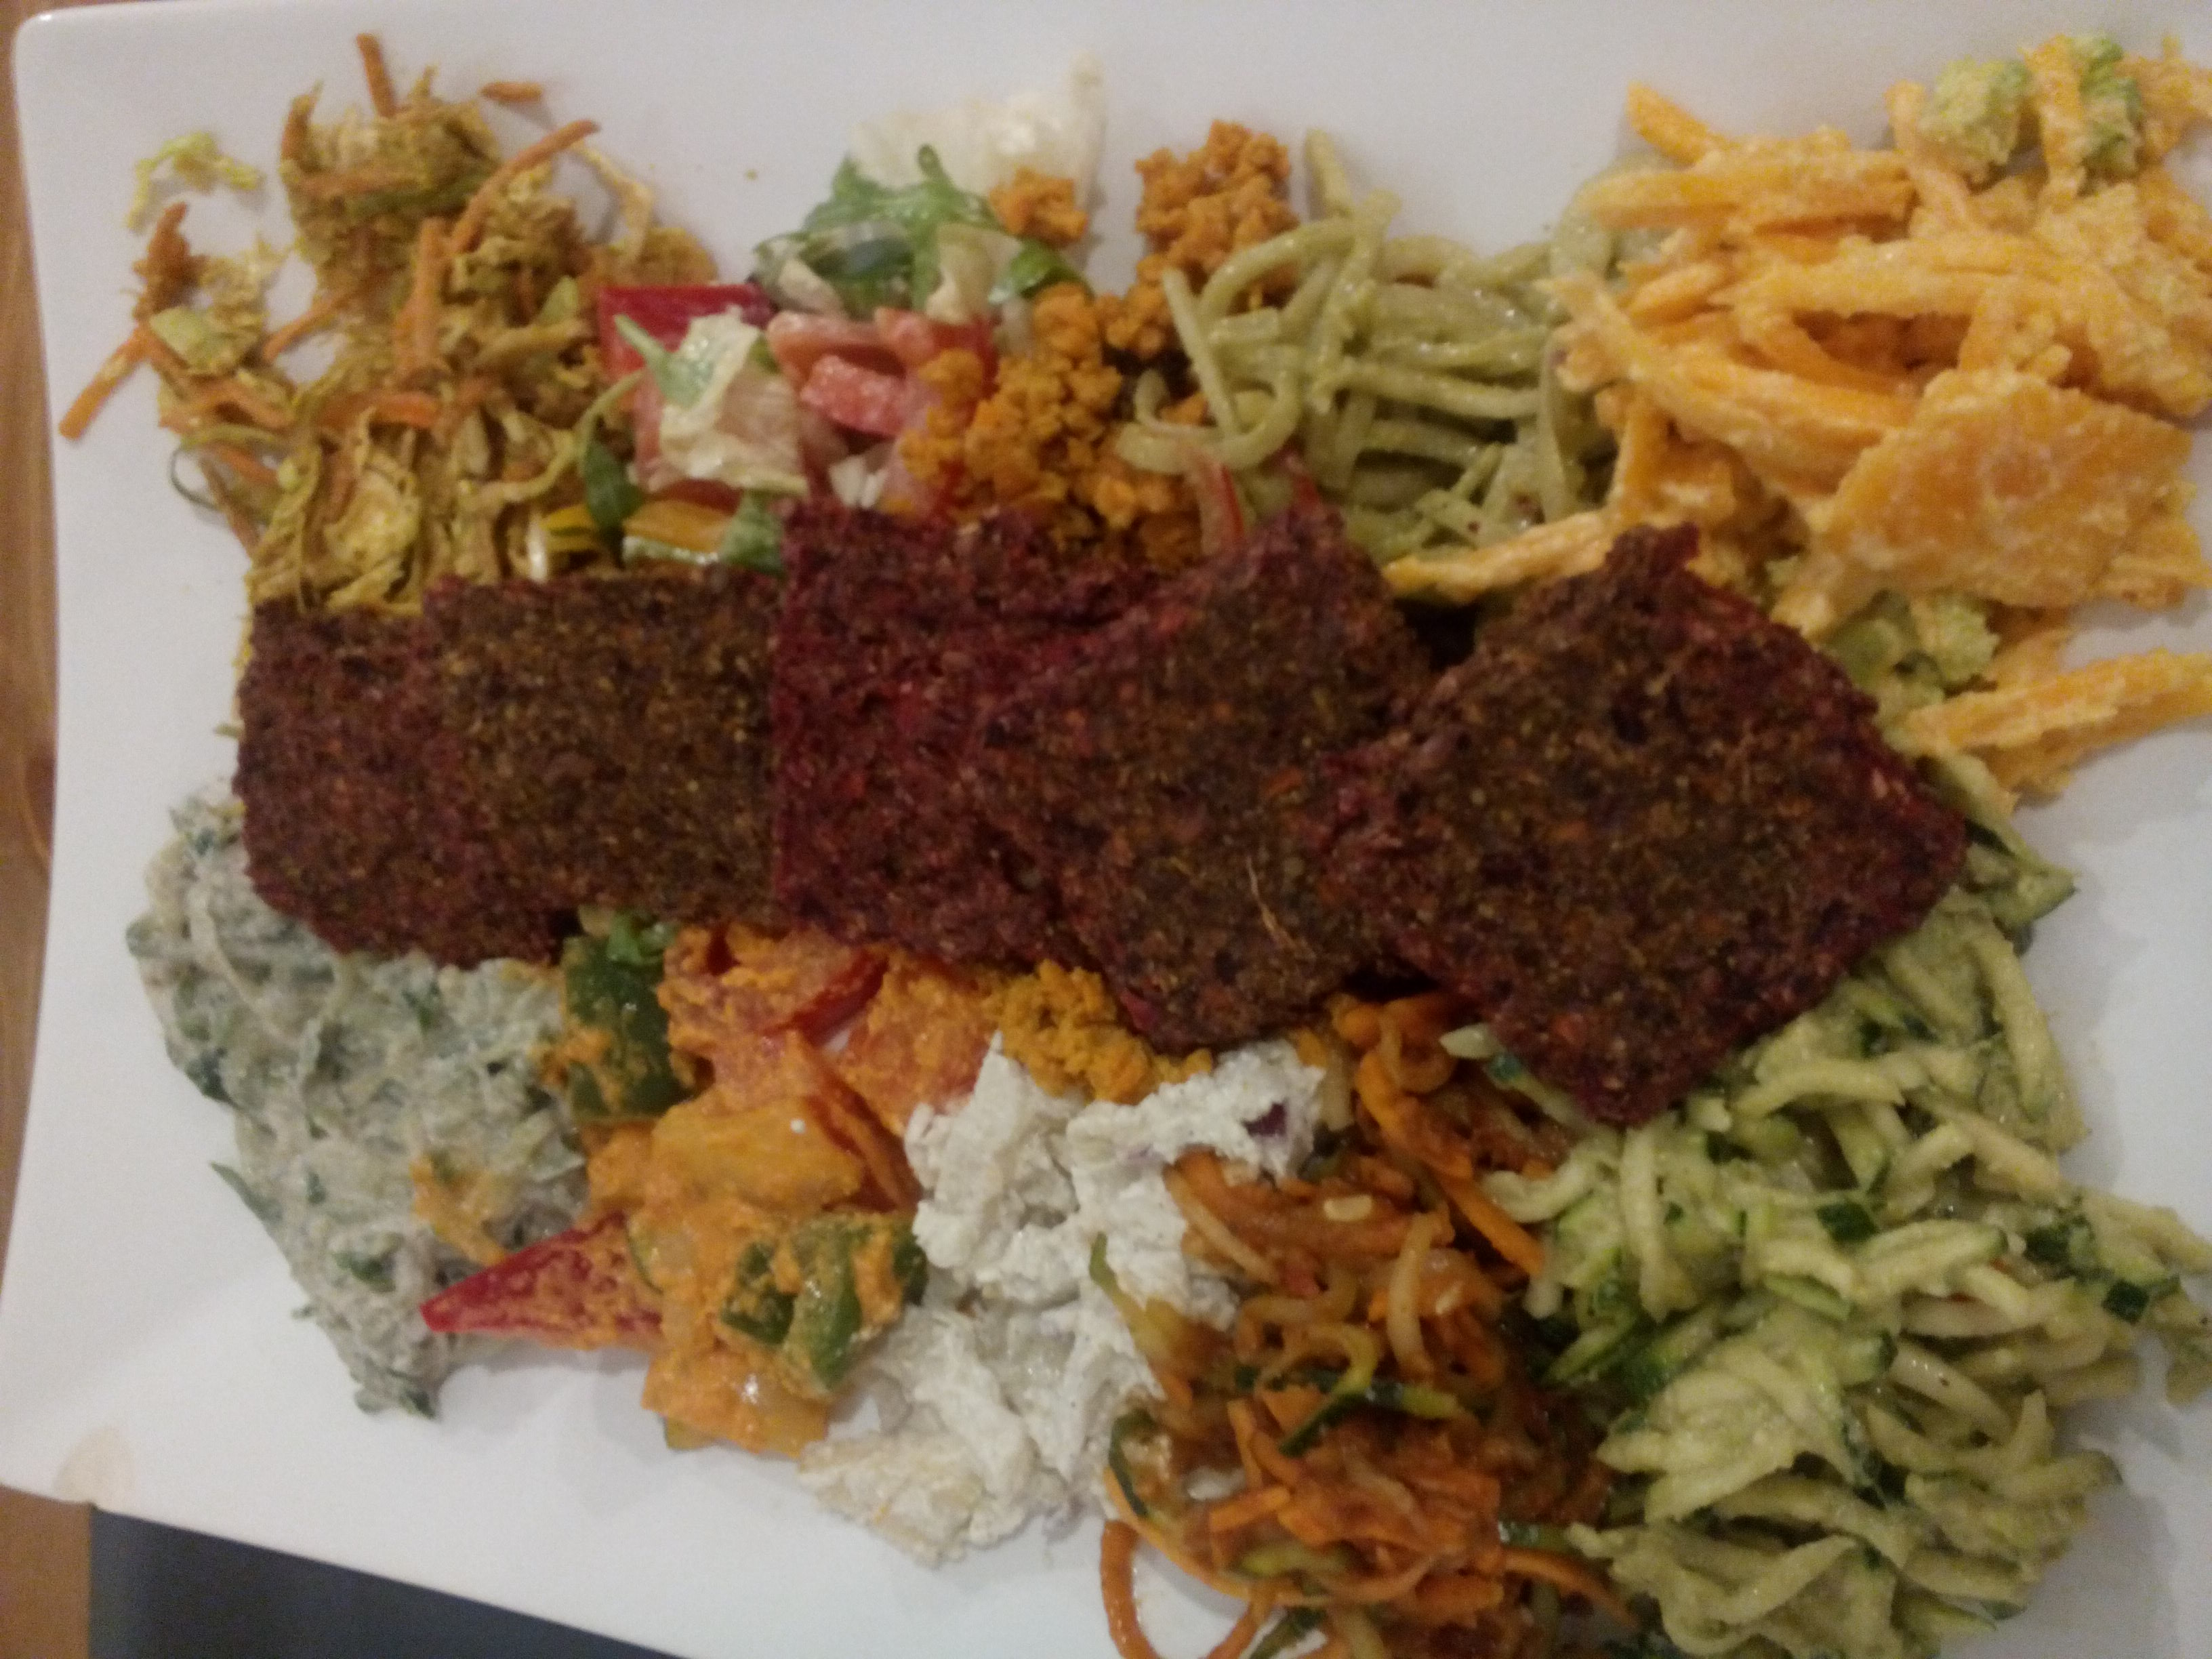 A plate with a line of small square crackers down the middle, and various colourful salads in blobs either side